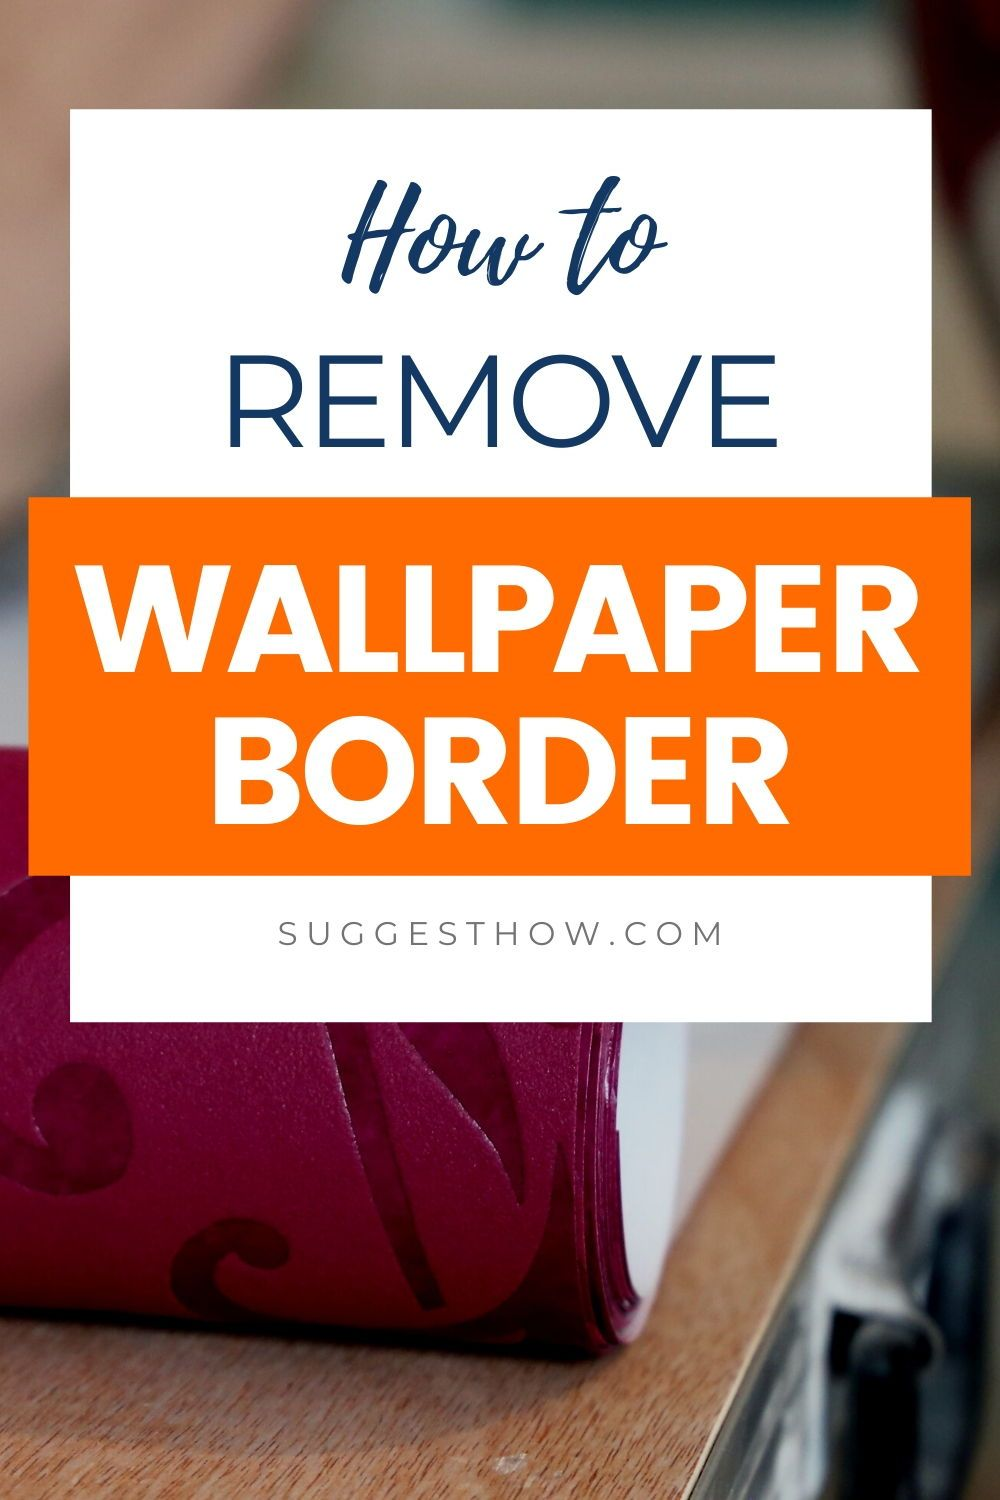 How To Remove Wallpaper Border 6 Steps To Follow Removable Wallpaper Wallpaper Border Diy Wallpaper Border